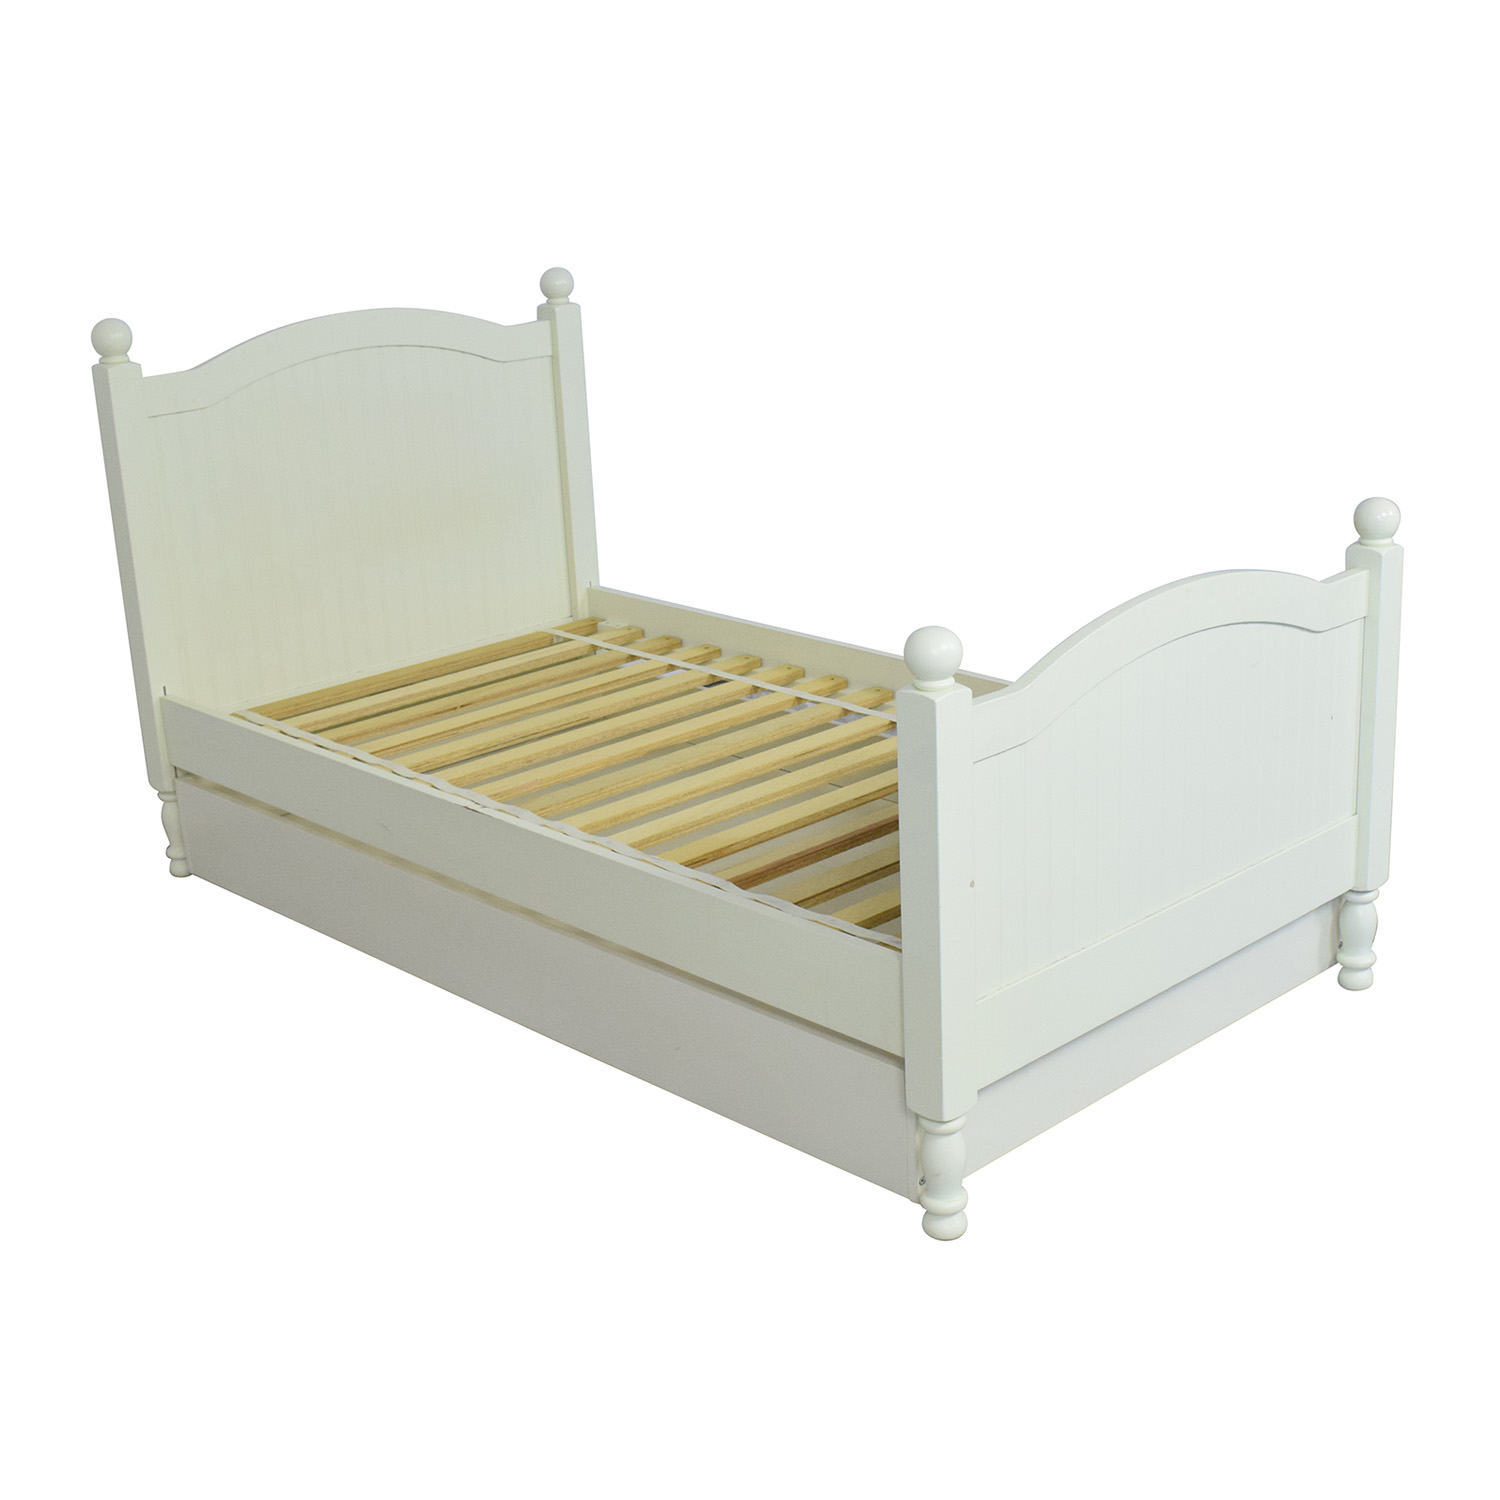 buy Pottery Barn Kids Pottery Barn Trundle Twin Bed online